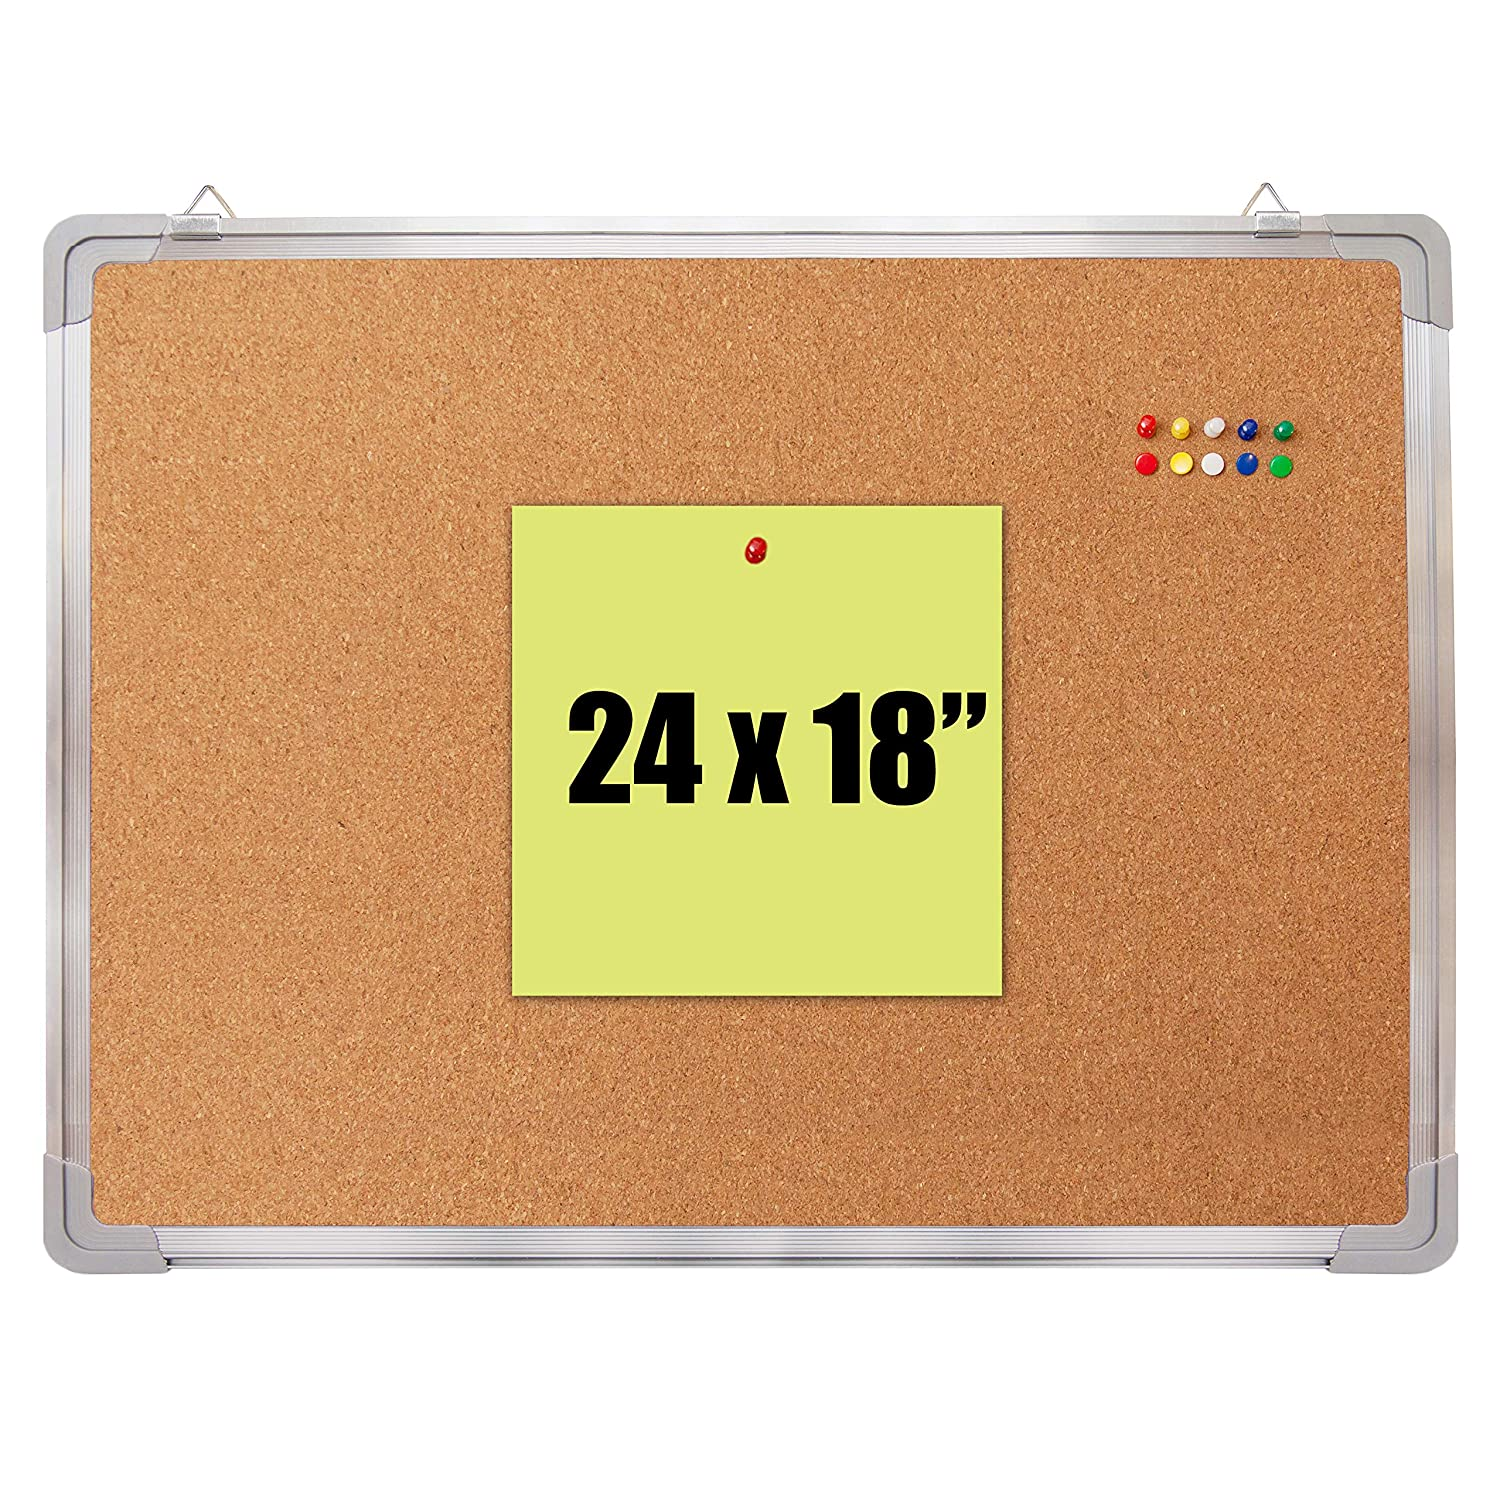 "Cork Board Set - Bulletin Corkboard 24 x 18 inch Framed with 10 Thumb Tacks - Small Wall Hanging Message Memo Pin Tackboard Organizer for Home, Office, Desk and Cubicle (Cork 24x18"")"